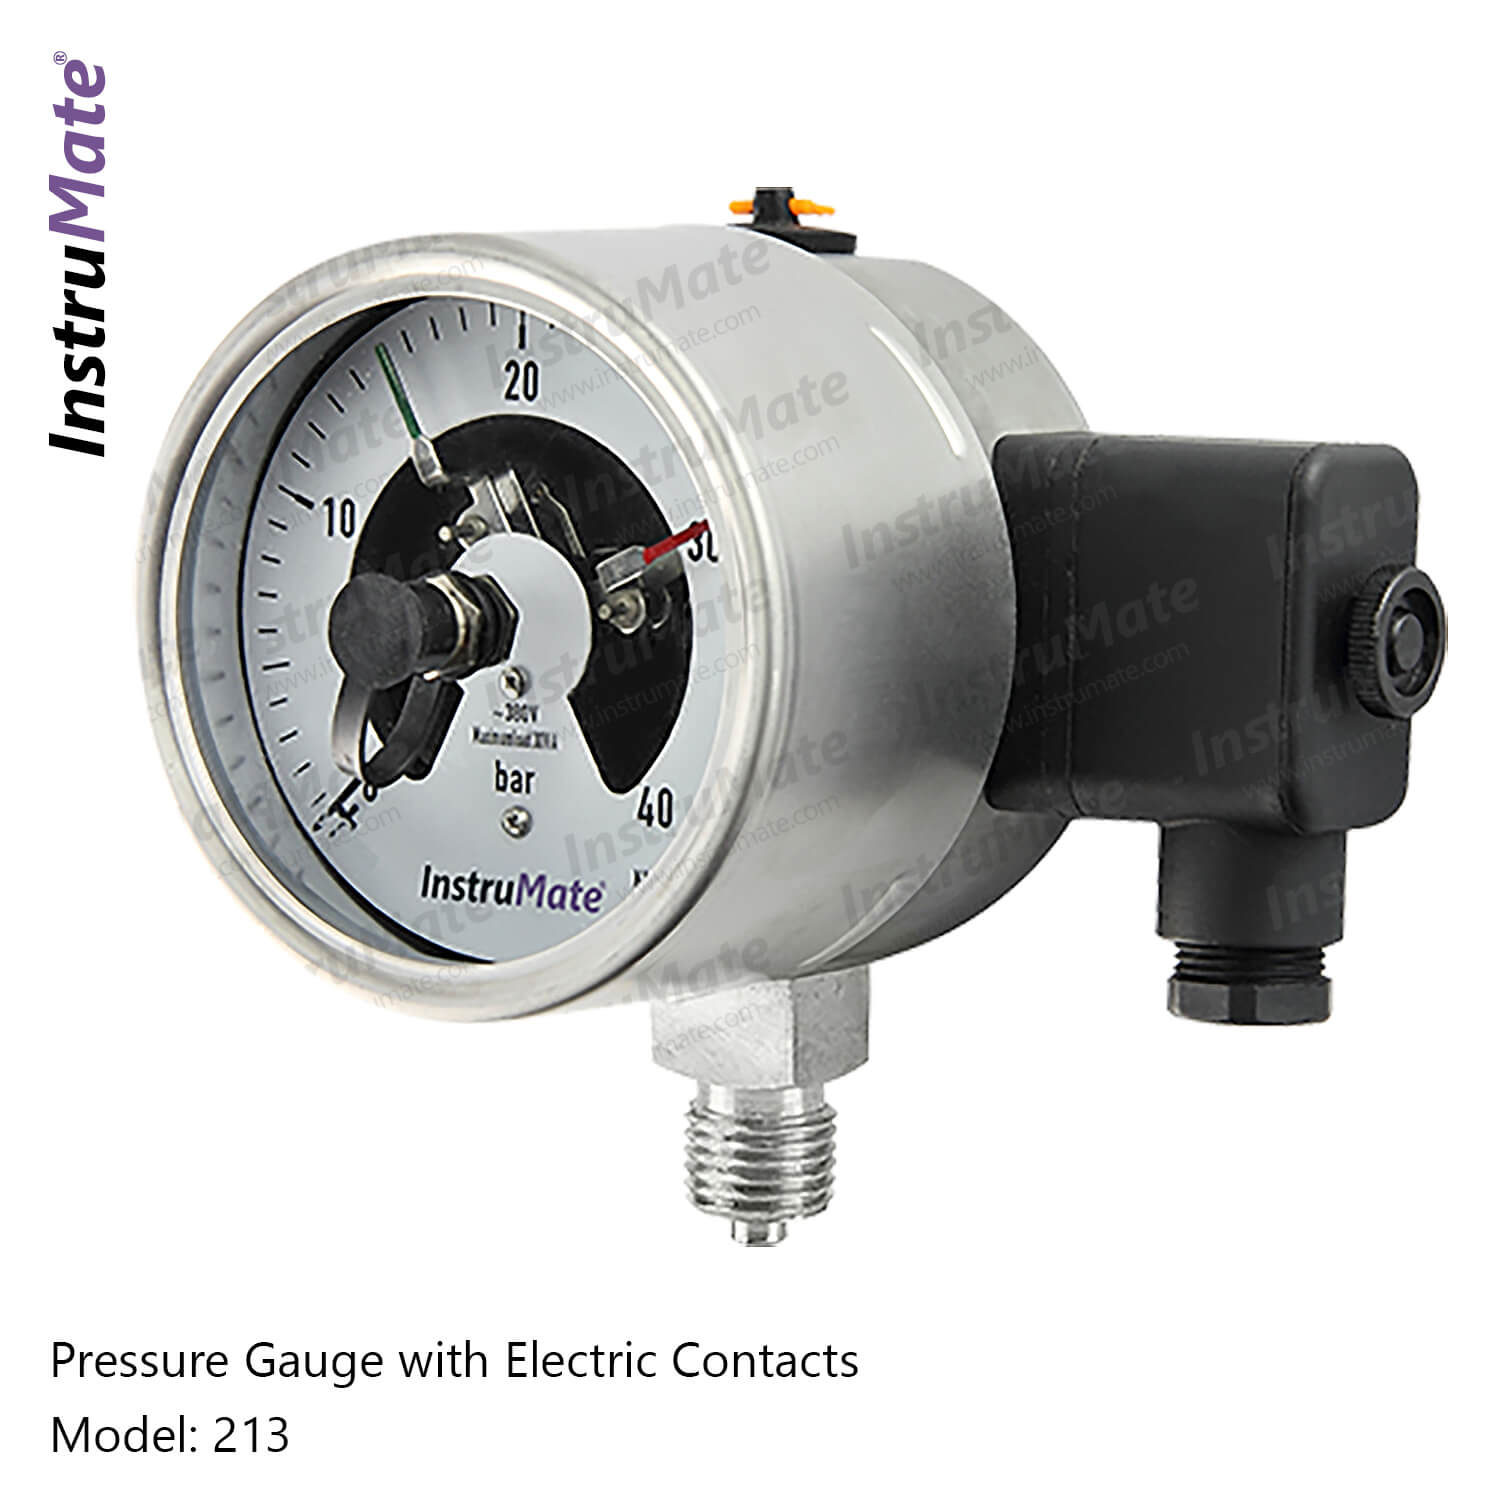 Electric Contact Pressure Gauge - 213 - Instrumate